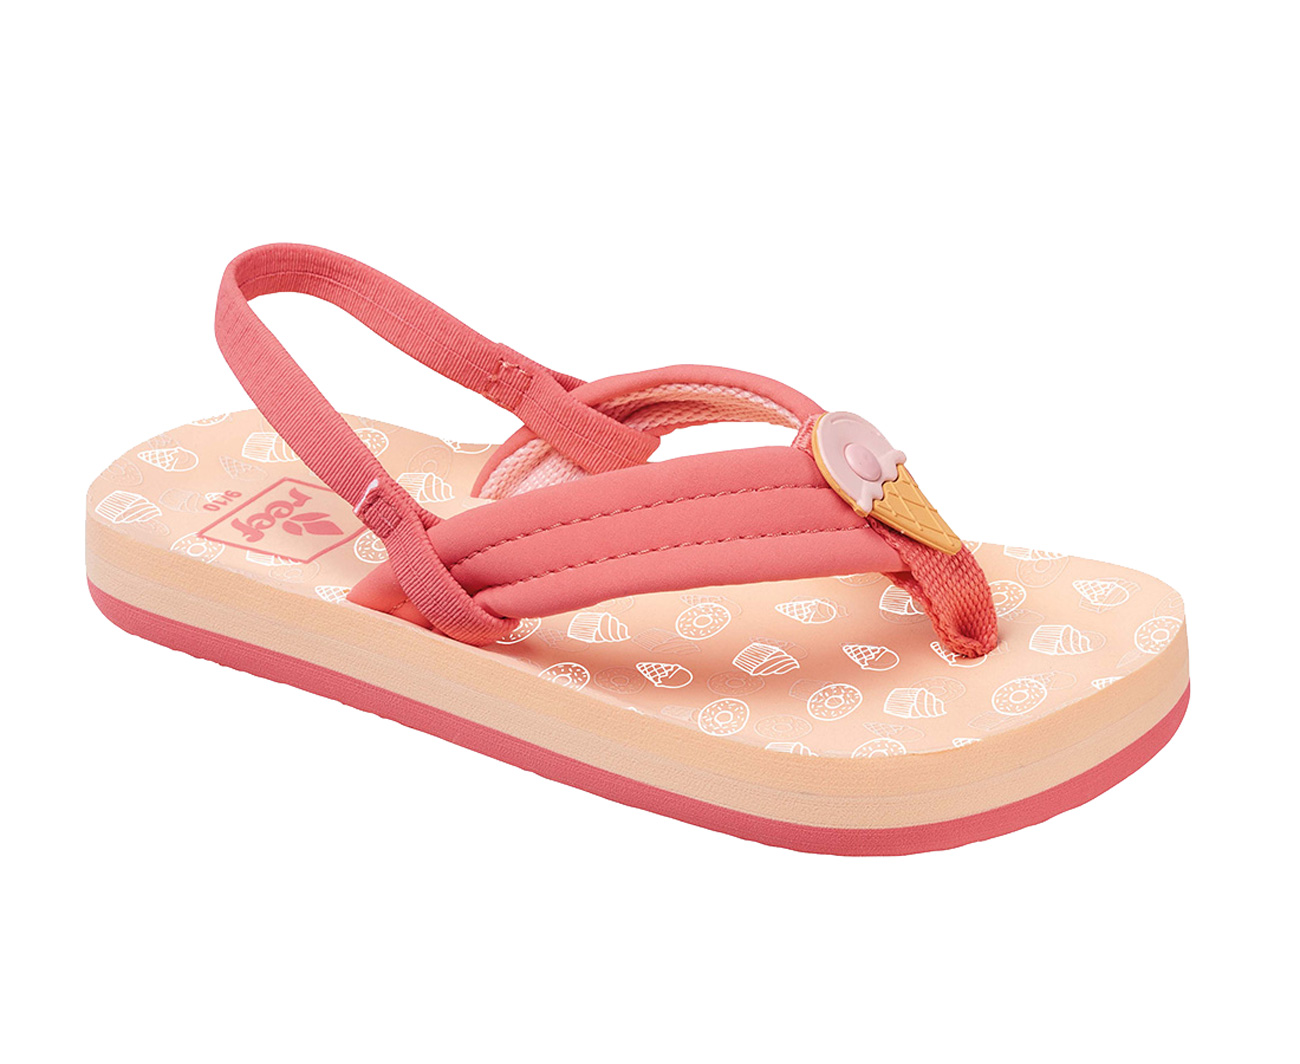 968b1e114babe7 Reef Little Ahi Scents Flip Flops Ice Cream